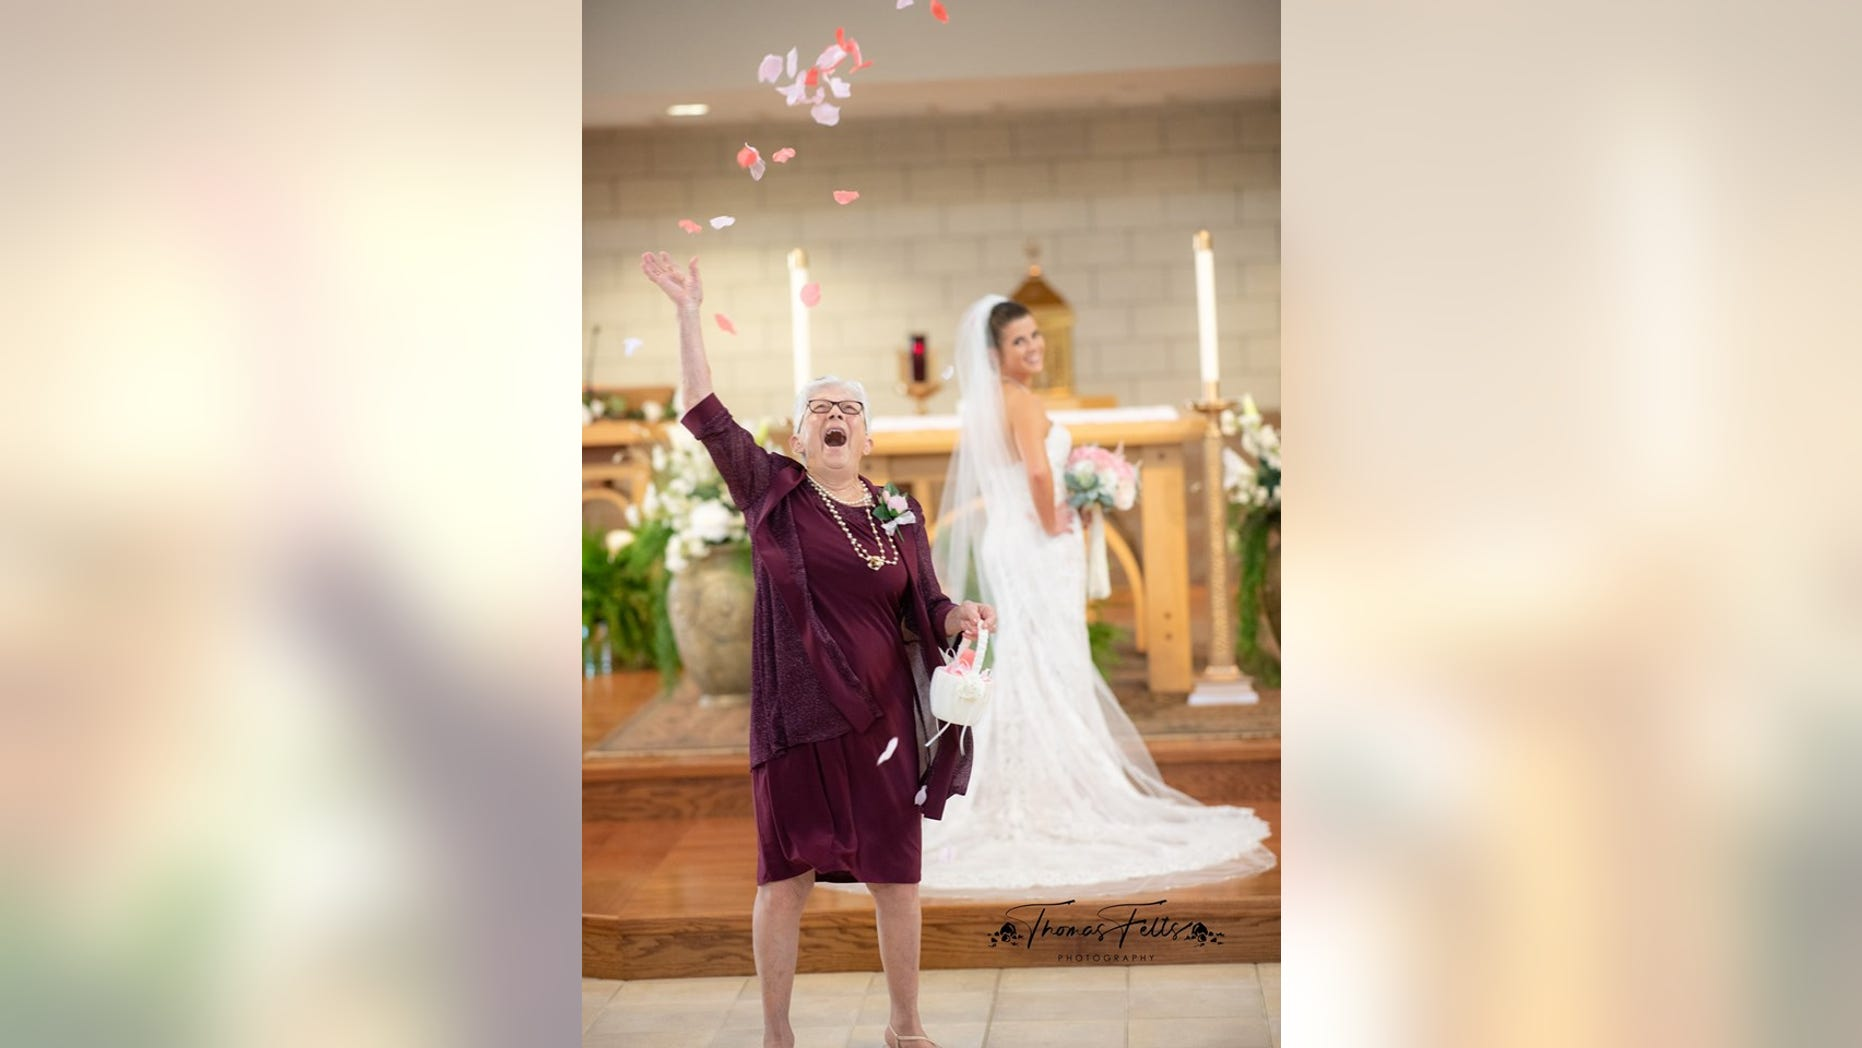 The photos, taken by Thomas Felts Photography, showed the octogenarian throwing the flower petals way up into the sky at the end of the aisle with an open-mouthed smile while the bride looks on in the background.